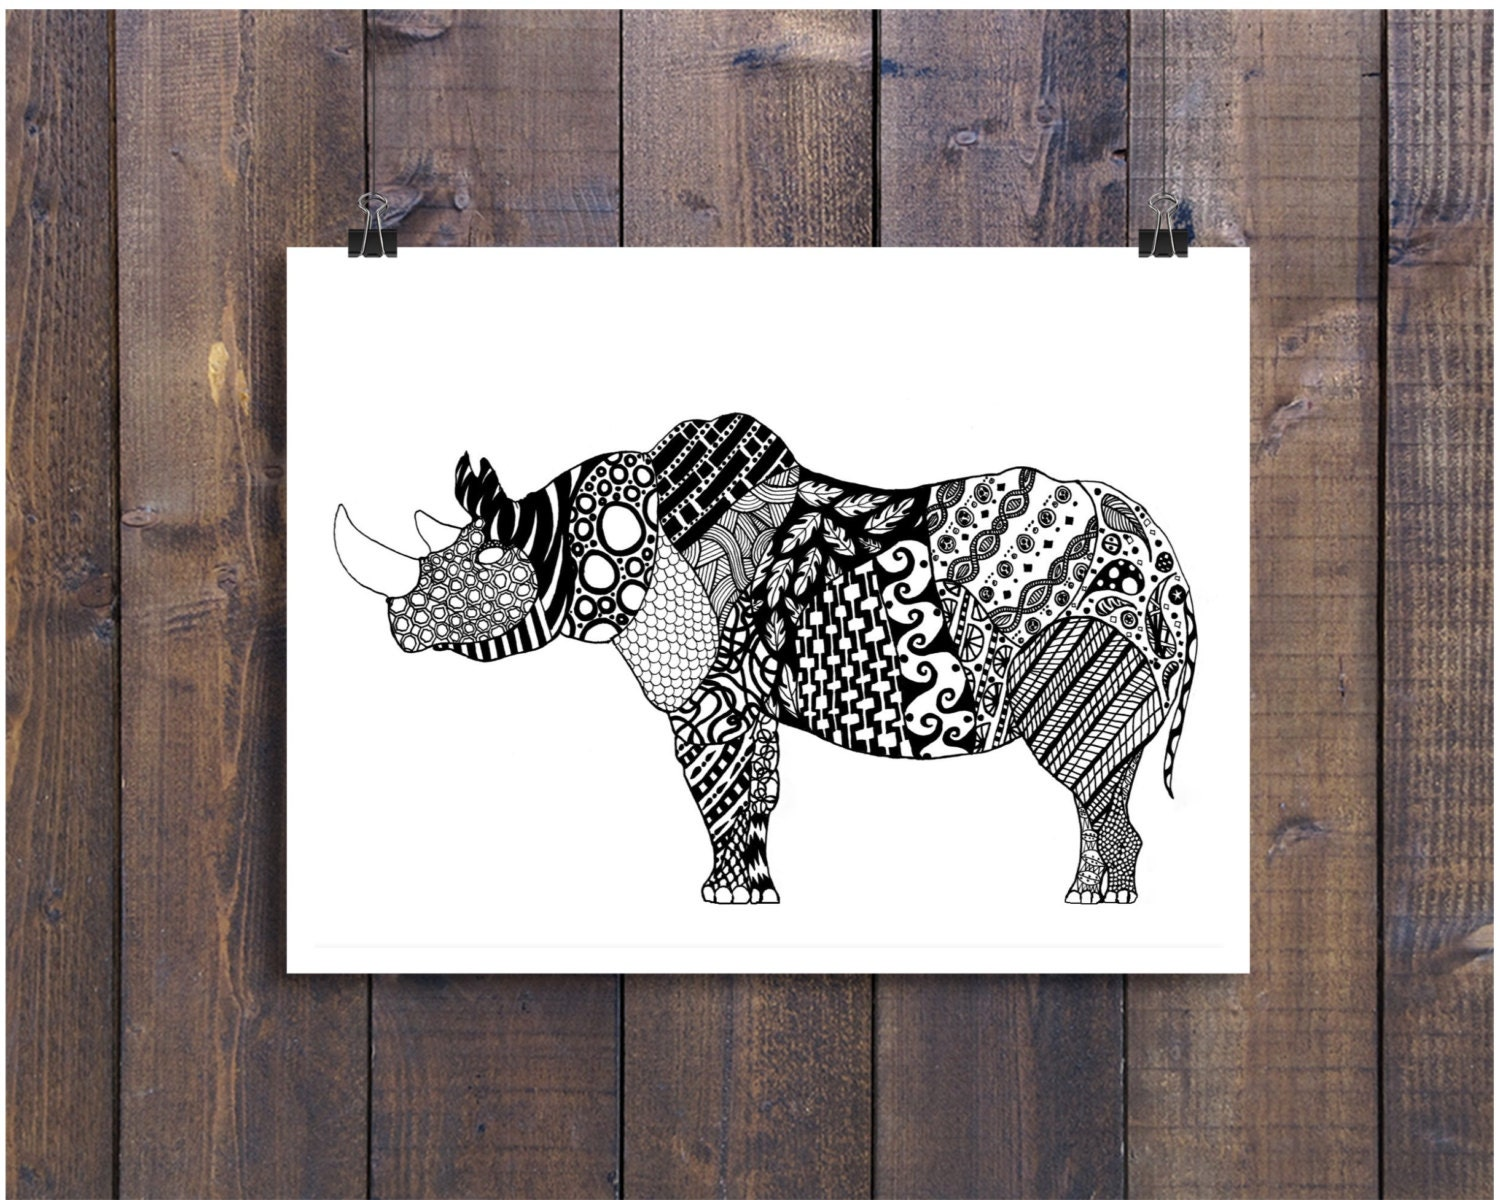 Where can i find a stud book for a rhinoceros?